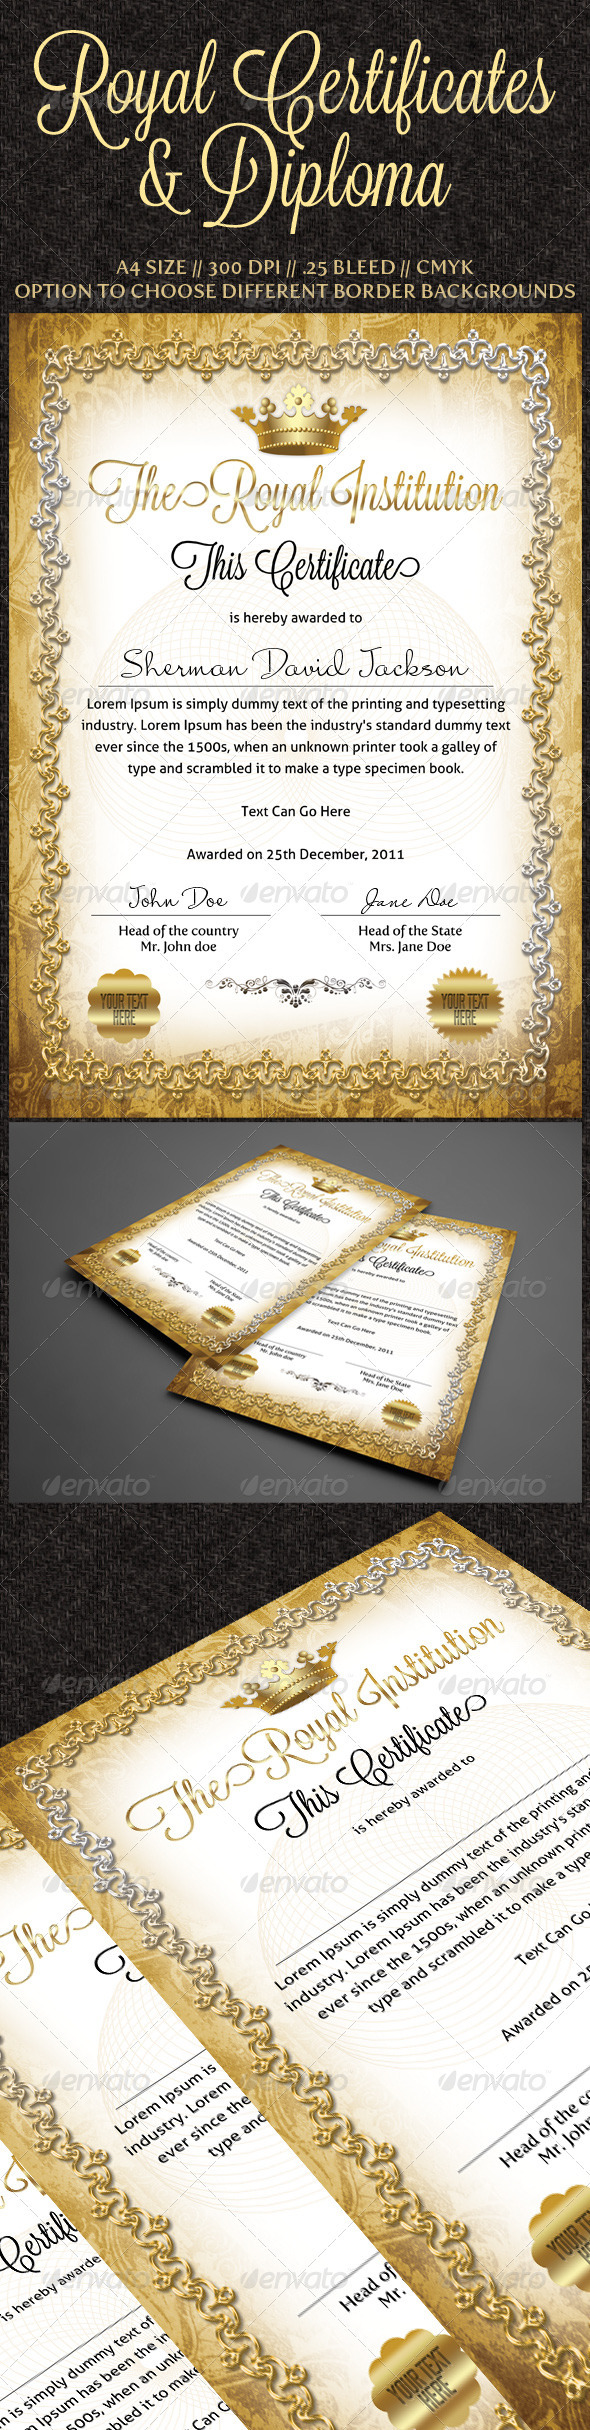 Graphic River Royal Certificates Print Templates -  Stationery  Certificates 886015